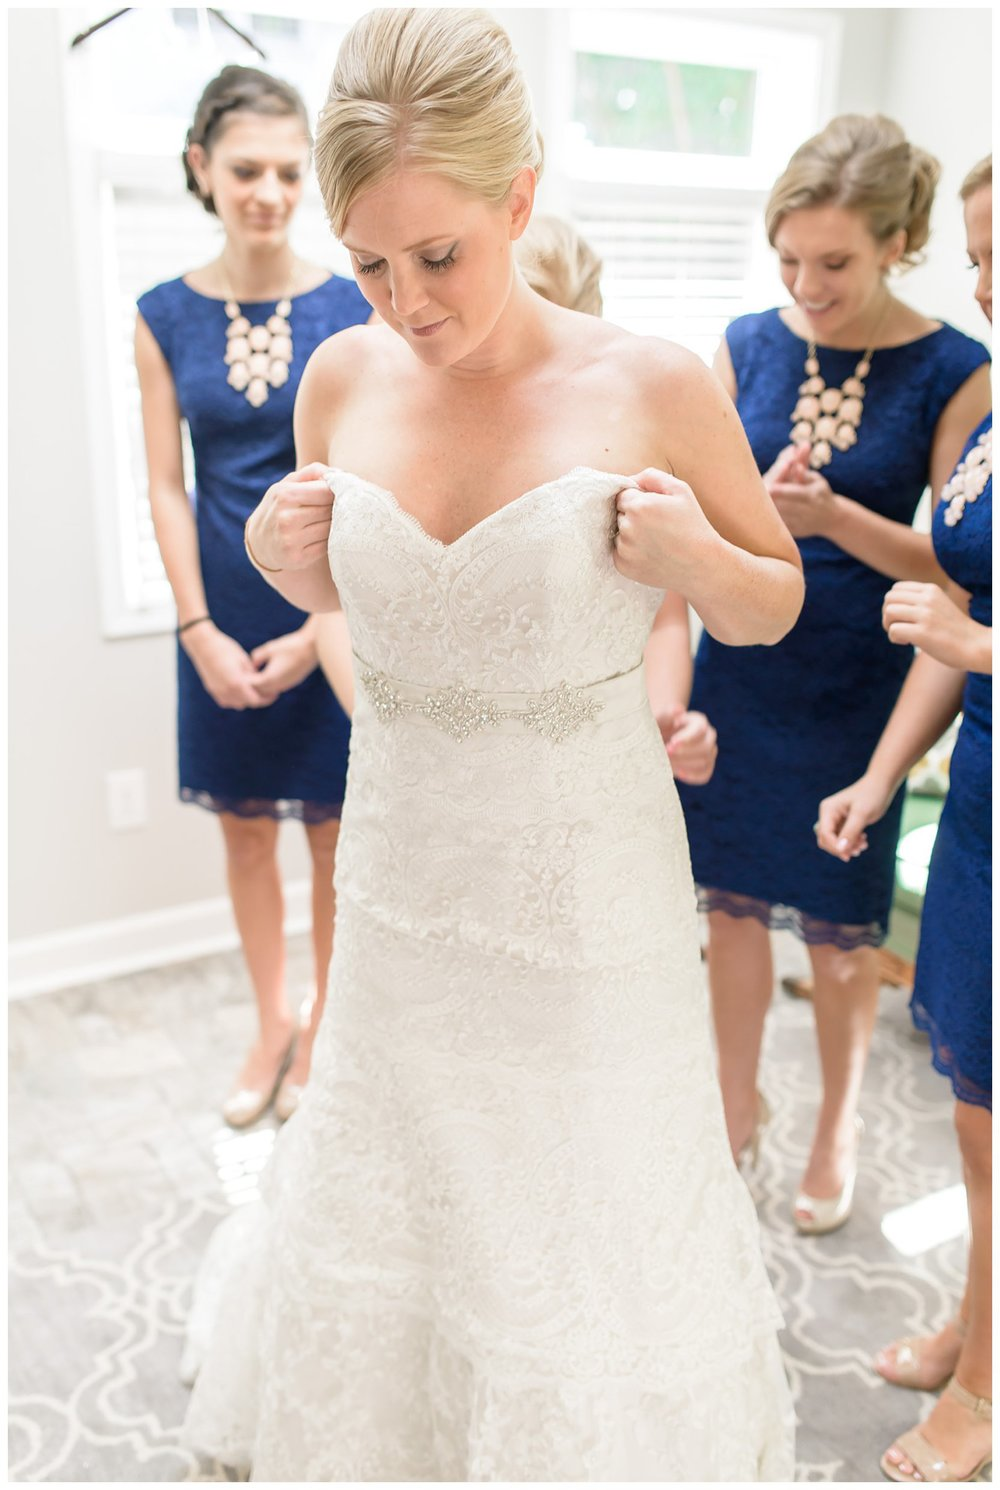 Getting ready details blush pink light green lace gown classic navy blue Charleston South Carolina Wedding Photograpgher Stephanie Kopf Photography eco wedding green environmentally friendly-70.jpg